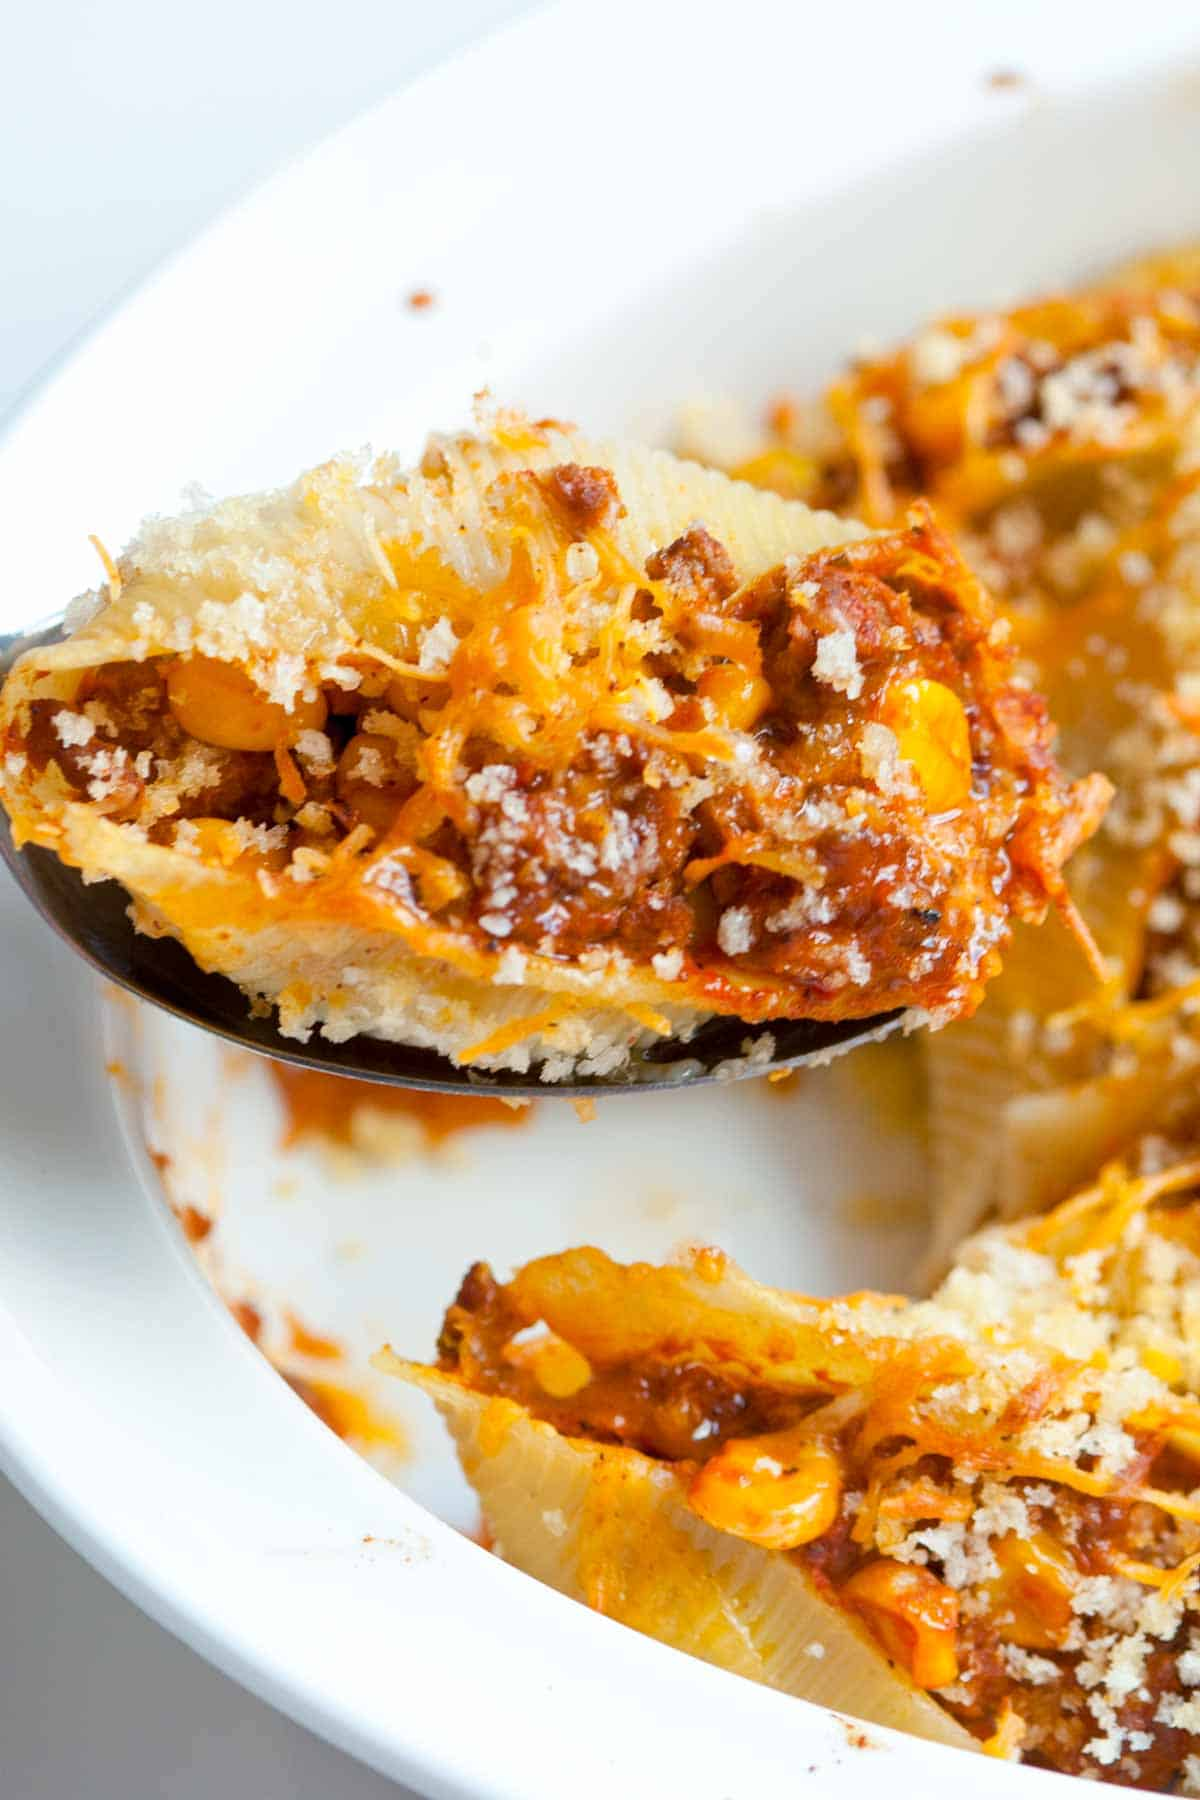 Taco inspired pasta shells filled with spiced ground beef, cheese and corn.